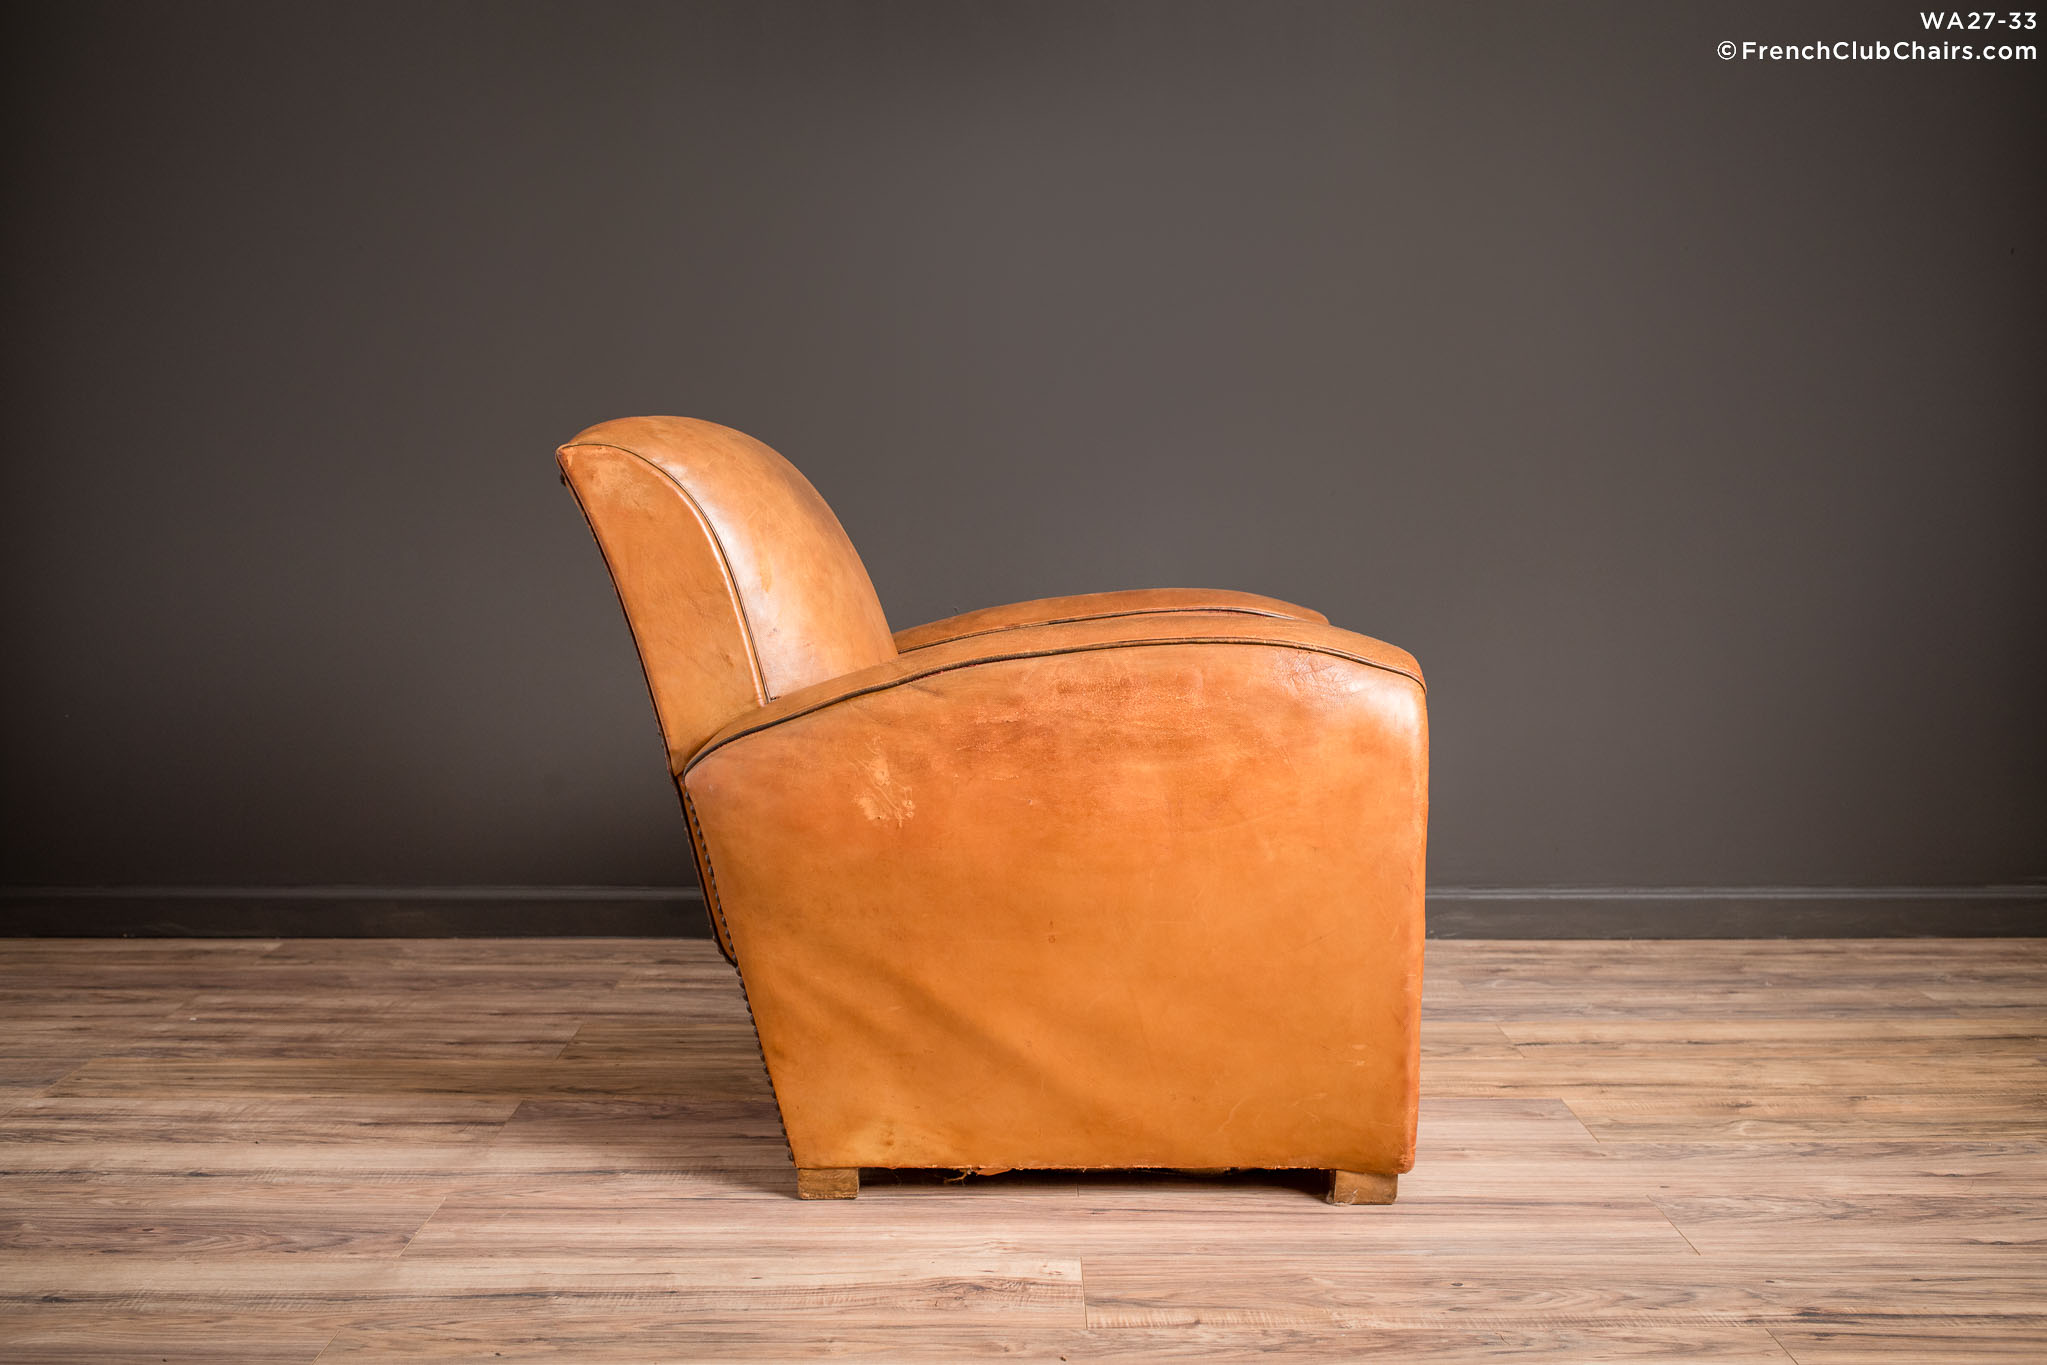 WA_27-33_Slope_Saintes_Solo_R_3RT-v01-williams-antiks-leather-french-club-chair-wa_fcccom